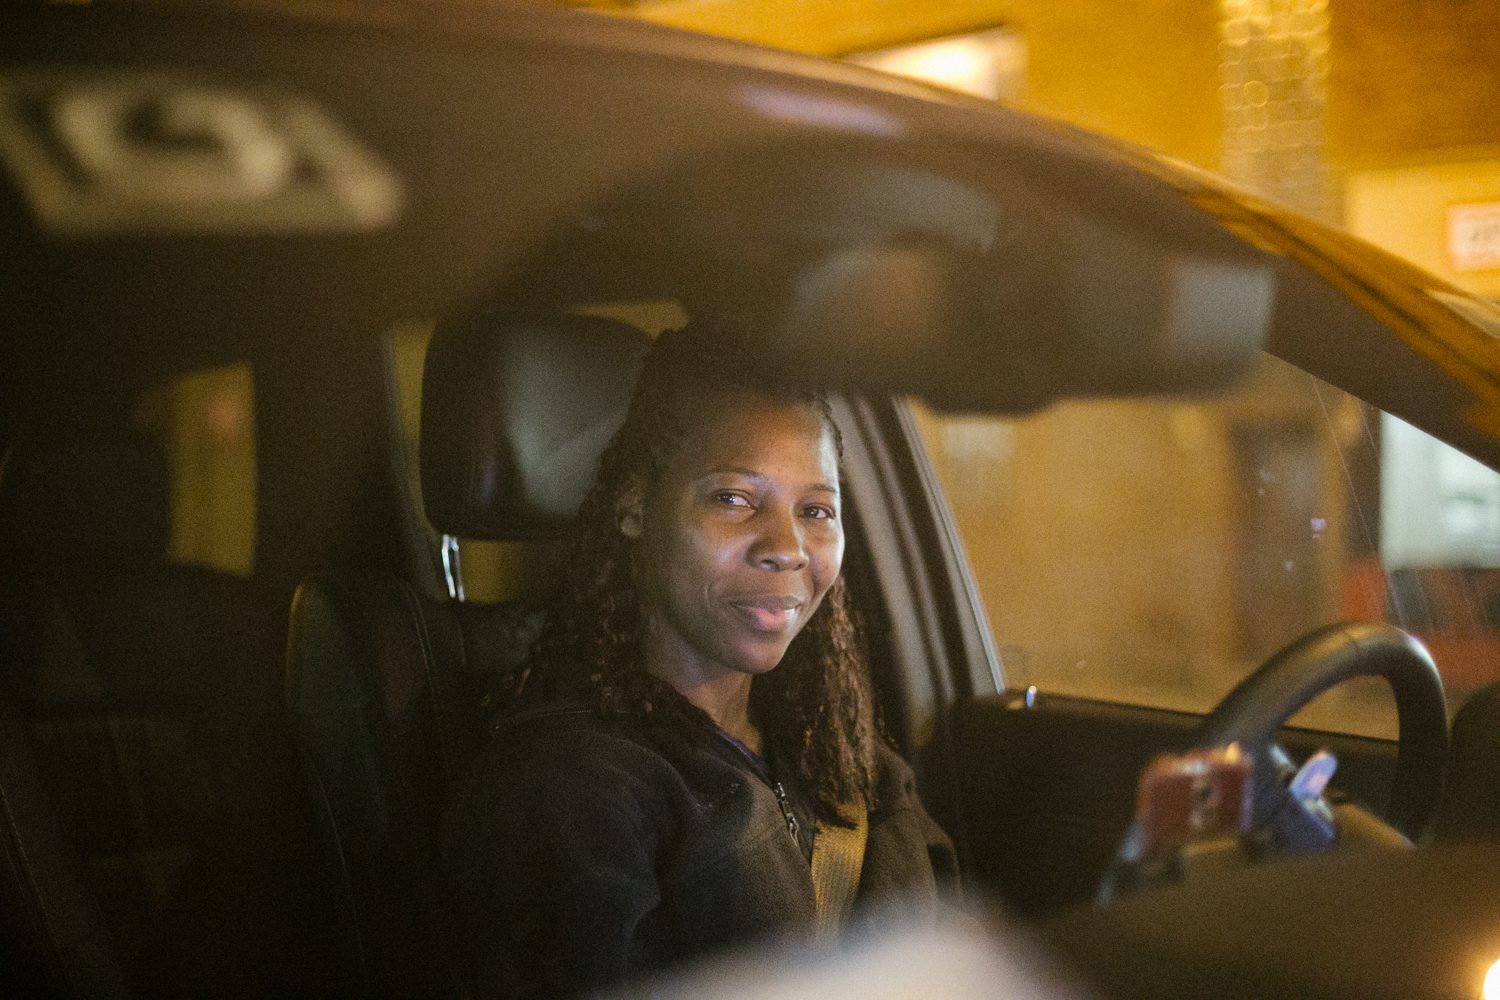 Efia, who was born in the Caribbean, raised in New York, has been driving for Uber for a year and a half. 30 rides given yesterday. 16/24